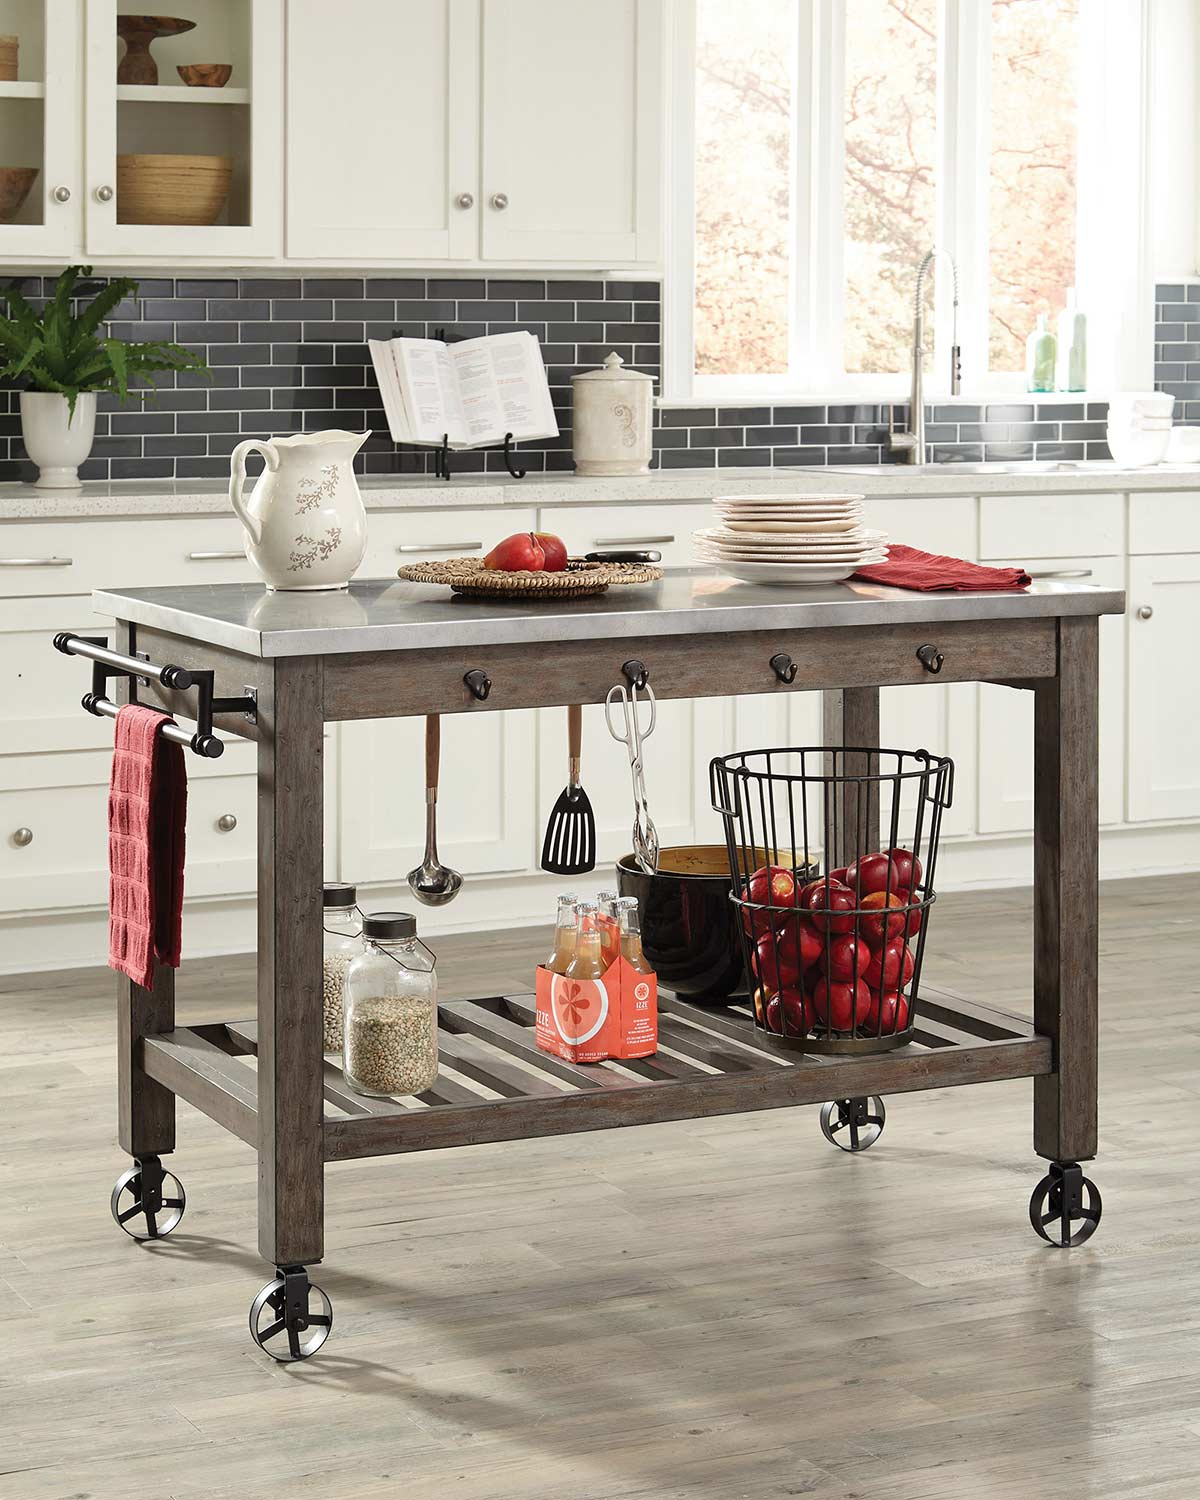 Coaster Davenport Kitchen Island - Gunmetal